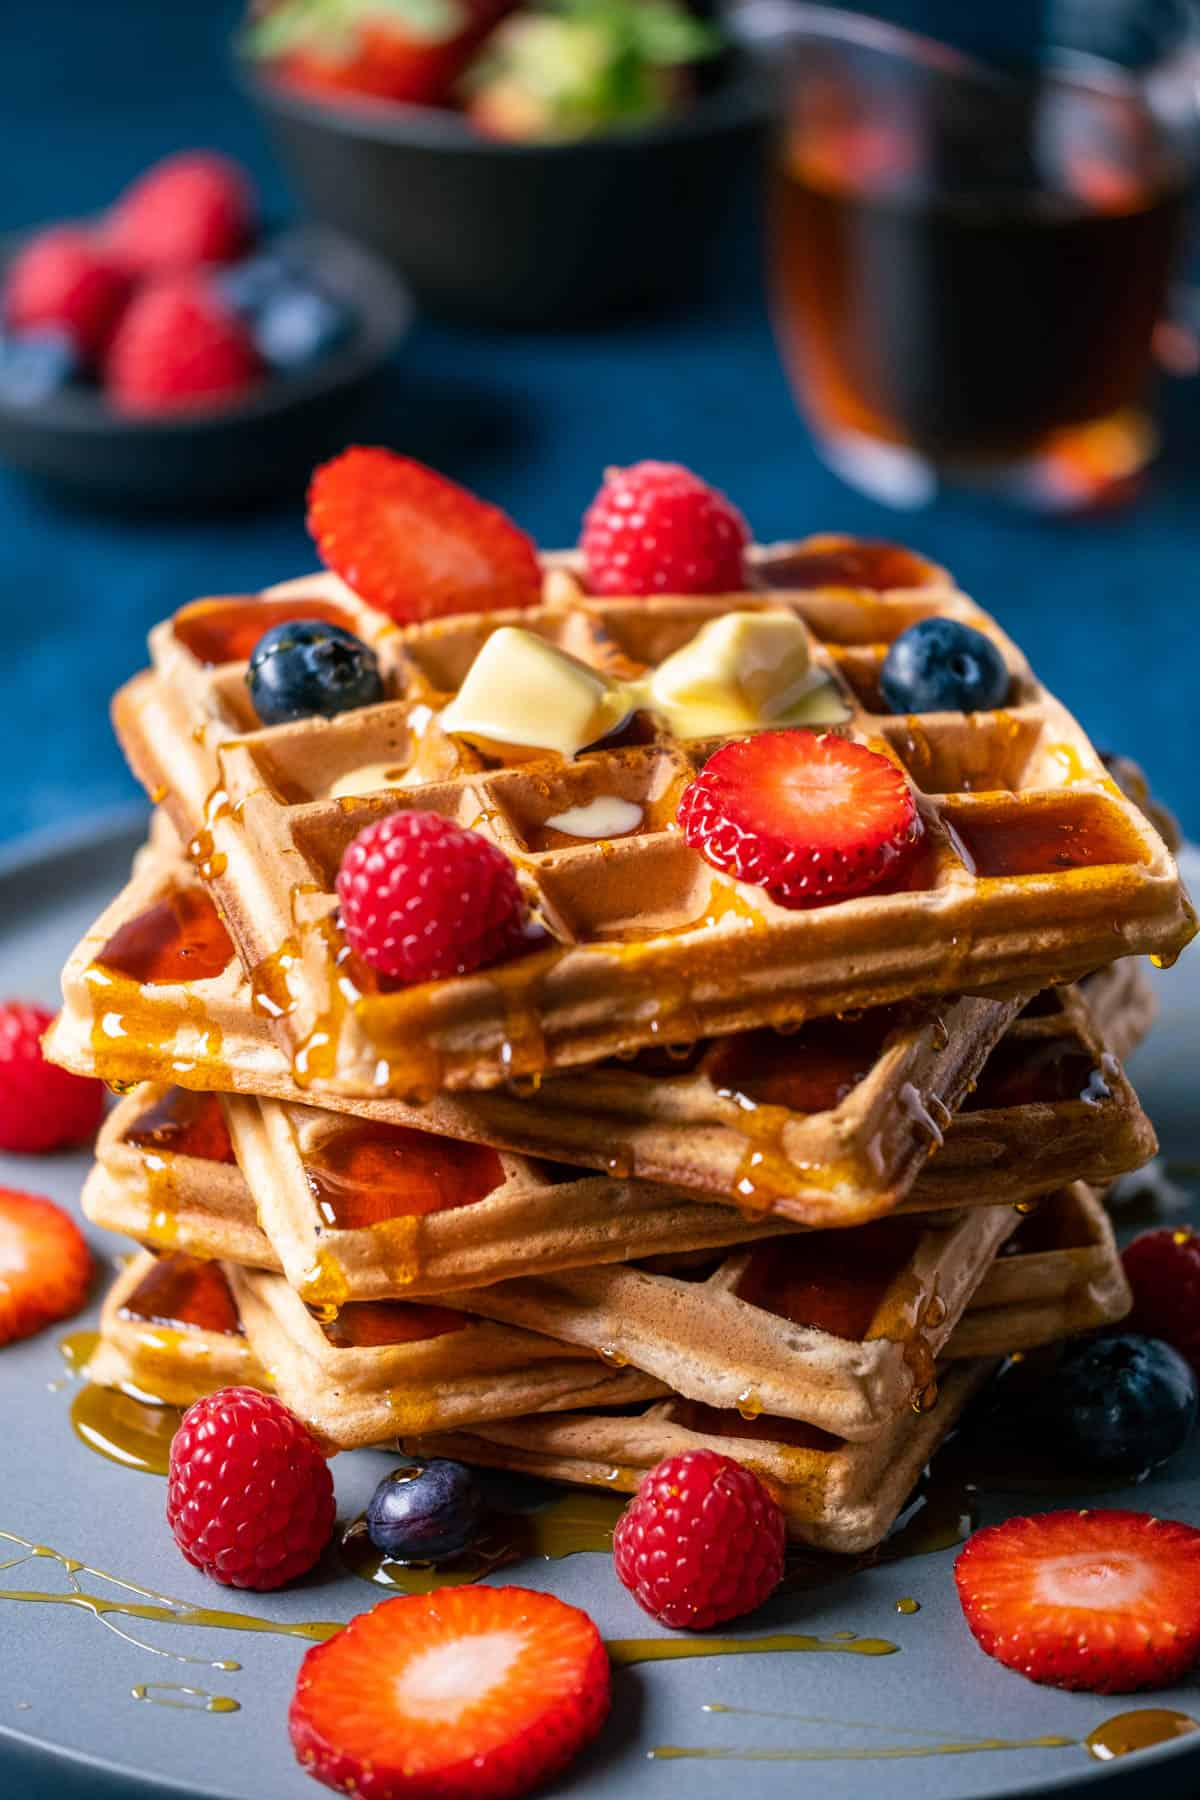 Stack of wafles topped with butter and fresh berries.